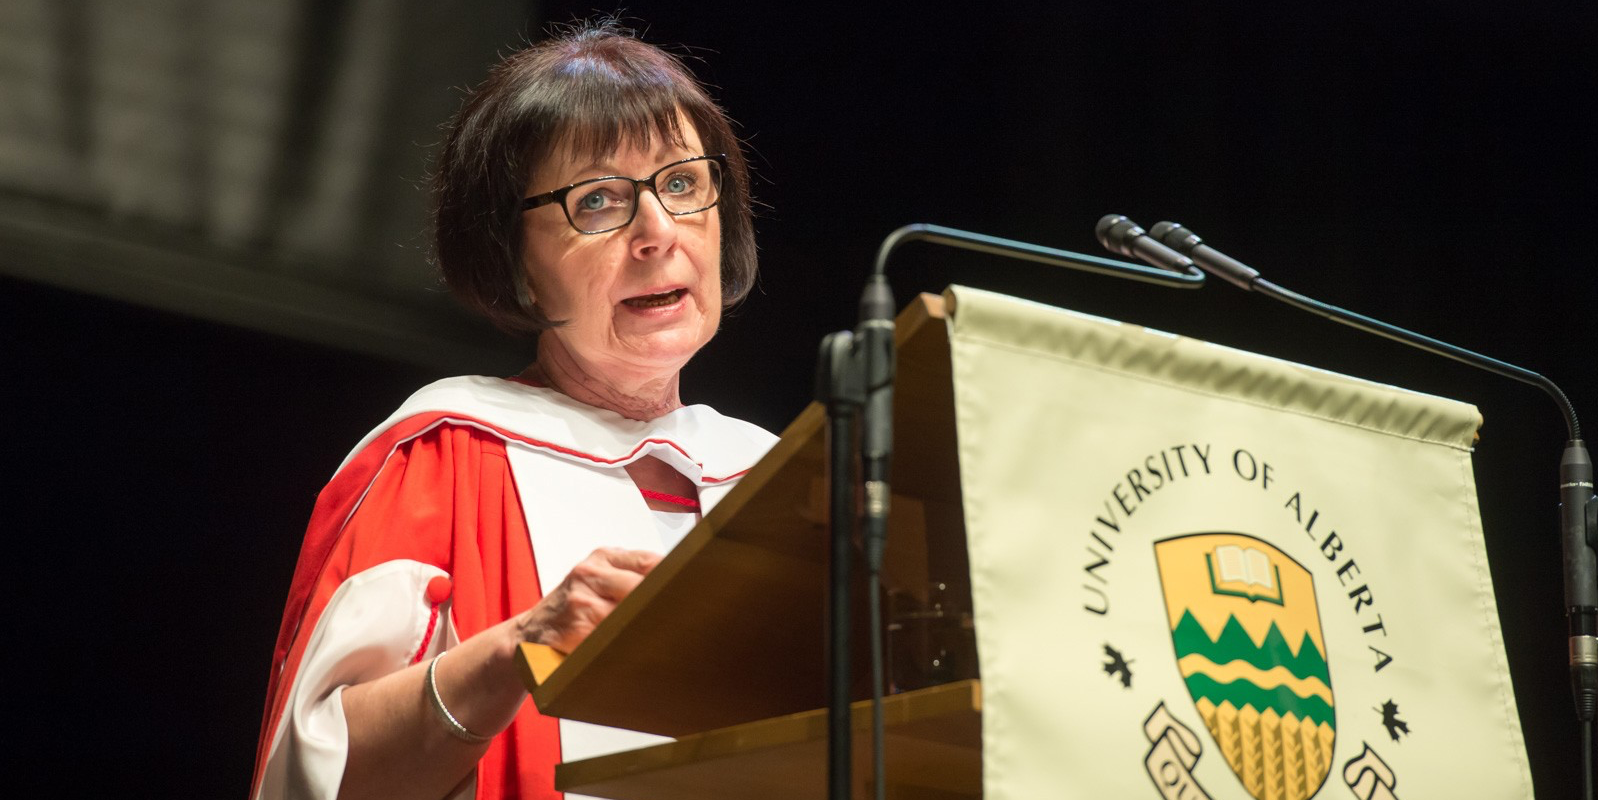 Anne Smith, president and CEO of the United Way of Alberta Capital Region, addresses science graduates after receiving an honorary Doctor of Laws degree on June 13. (Photo by Richard Siemens)